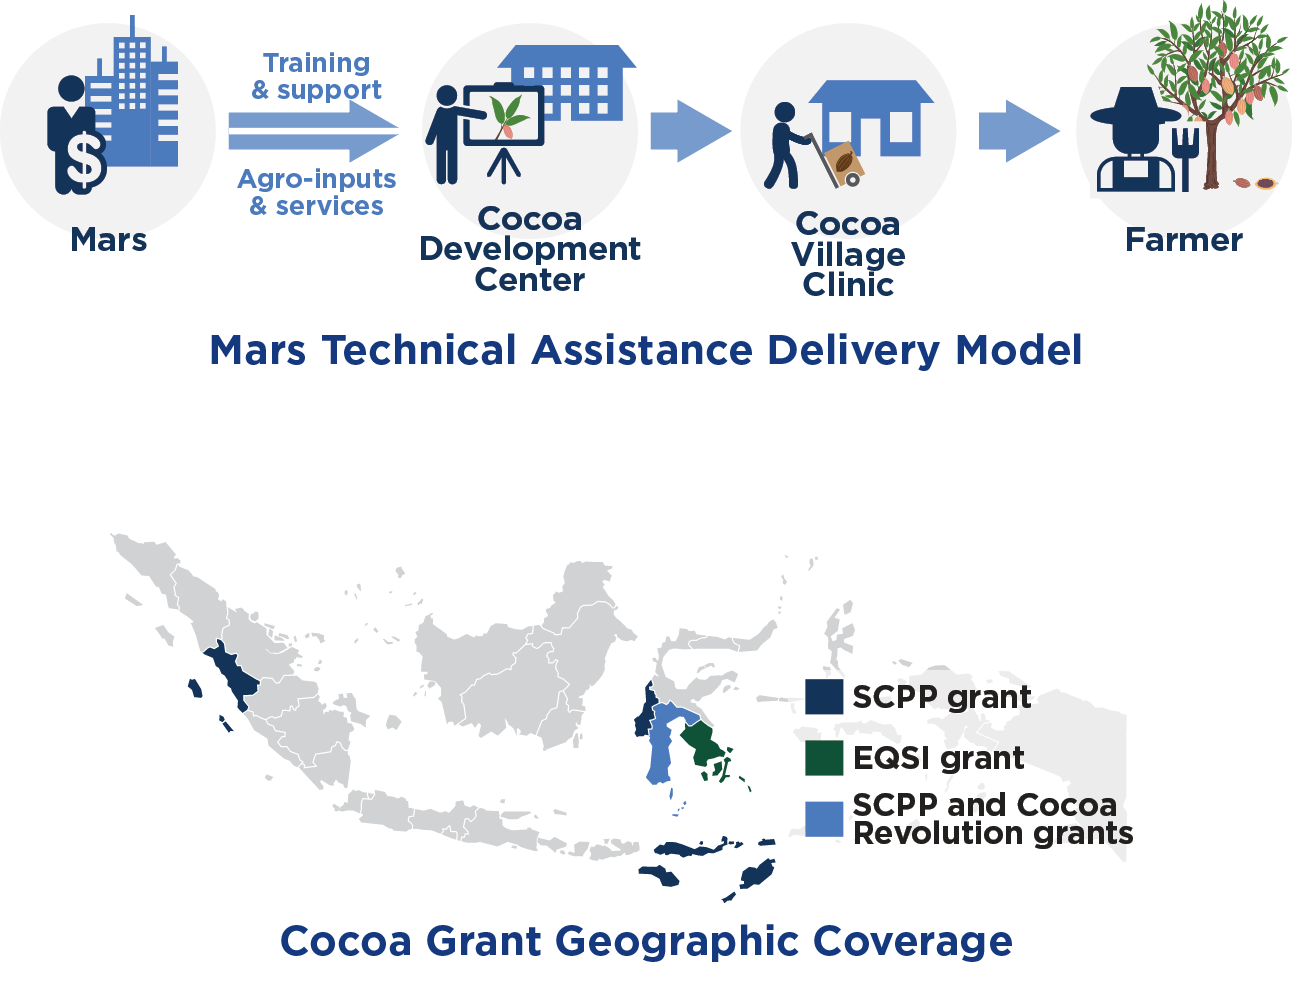 Mars Technical Assistance Delivery Model and Map of GP Cocoa Deographic Coverage